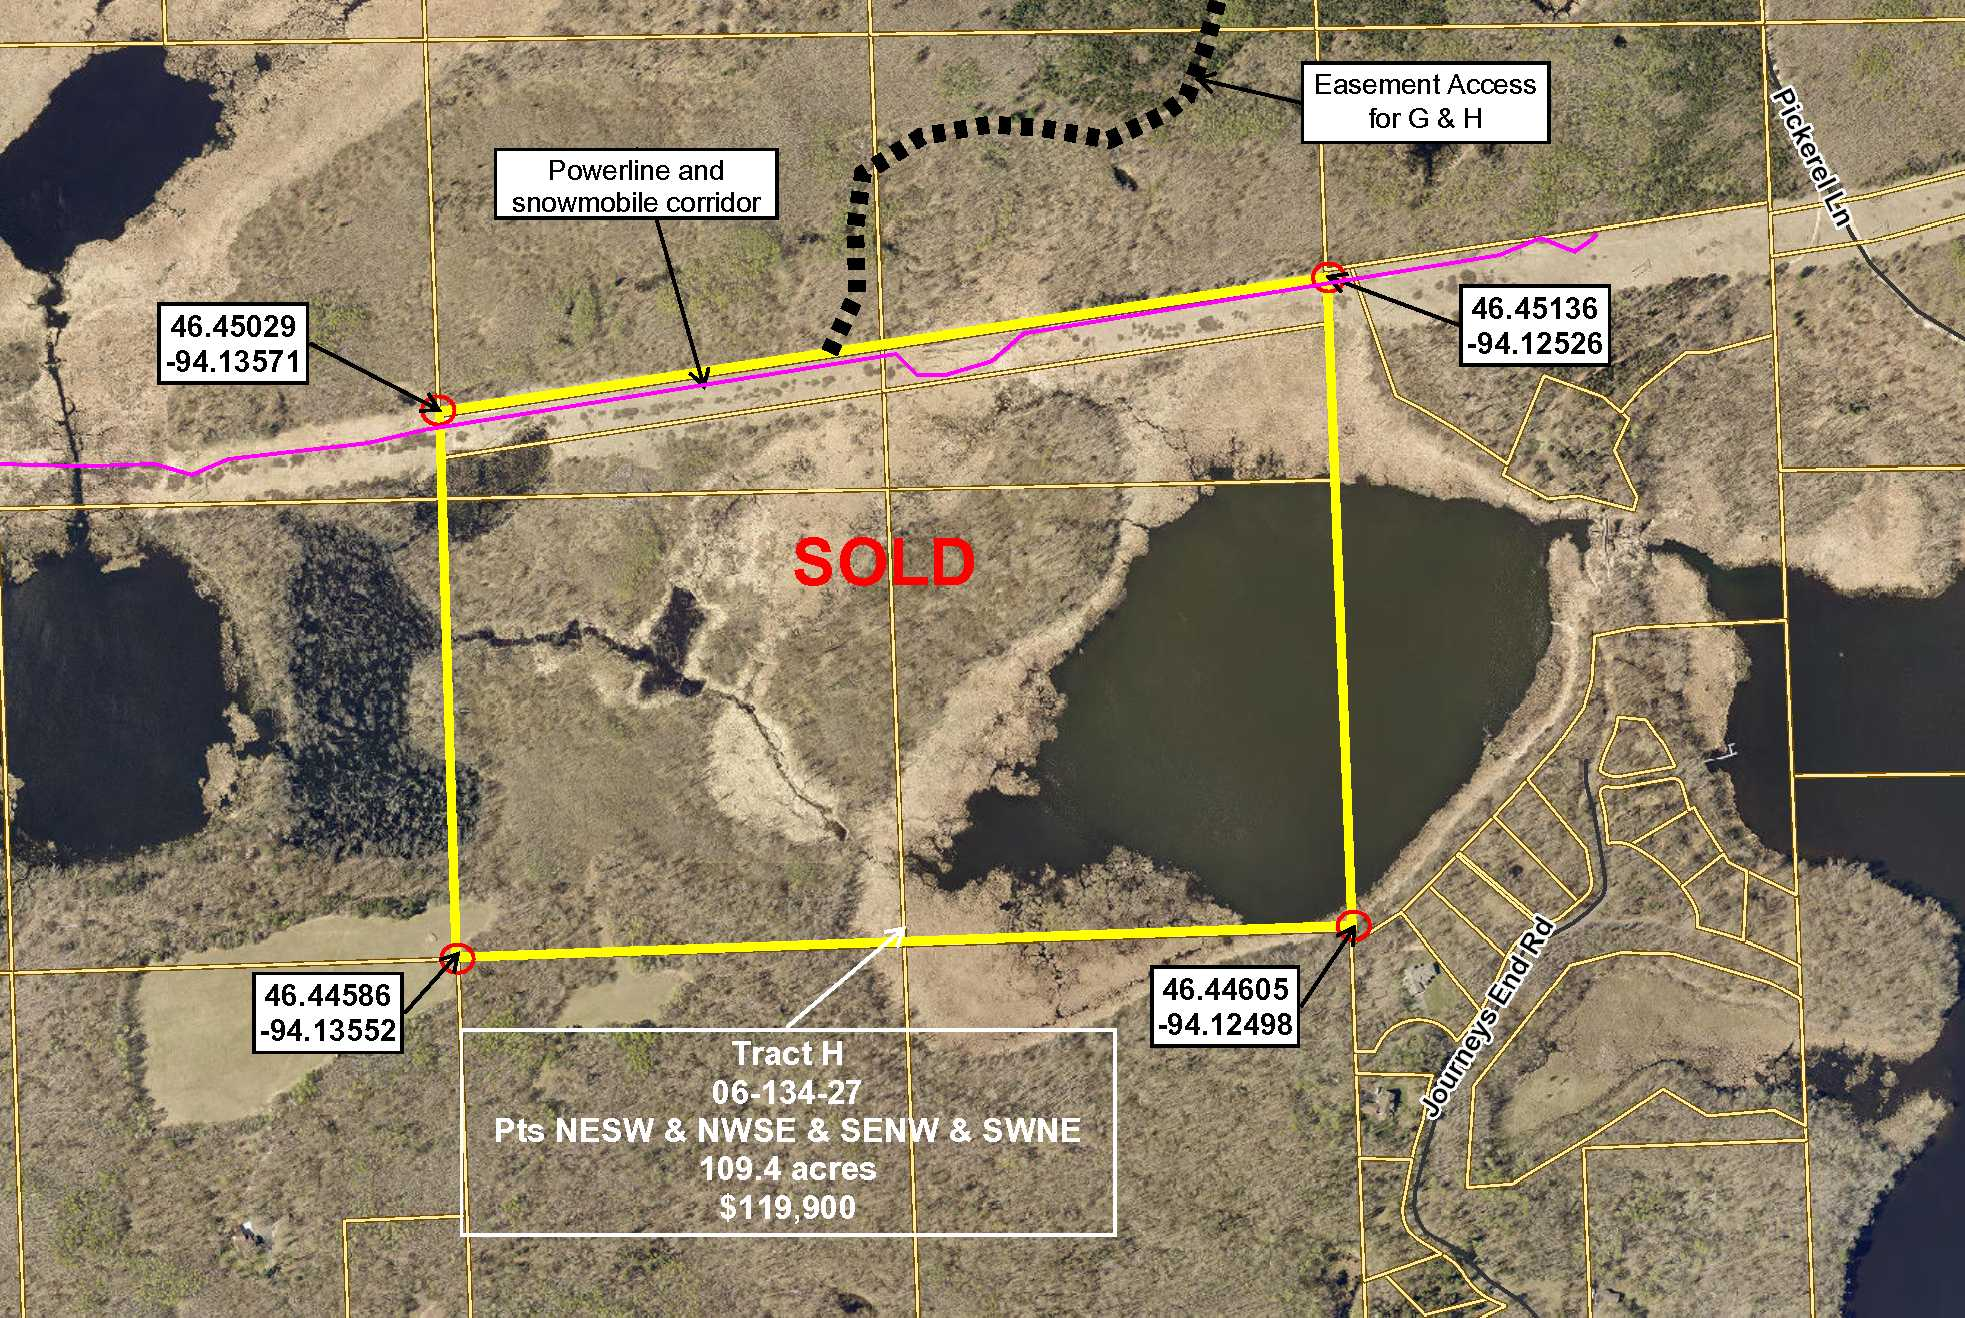 Tract H, 06-134-27, PT NESW, Pt NWSE, & SENW & SWNE Lk Rd, Merrifield, Crow Wing,